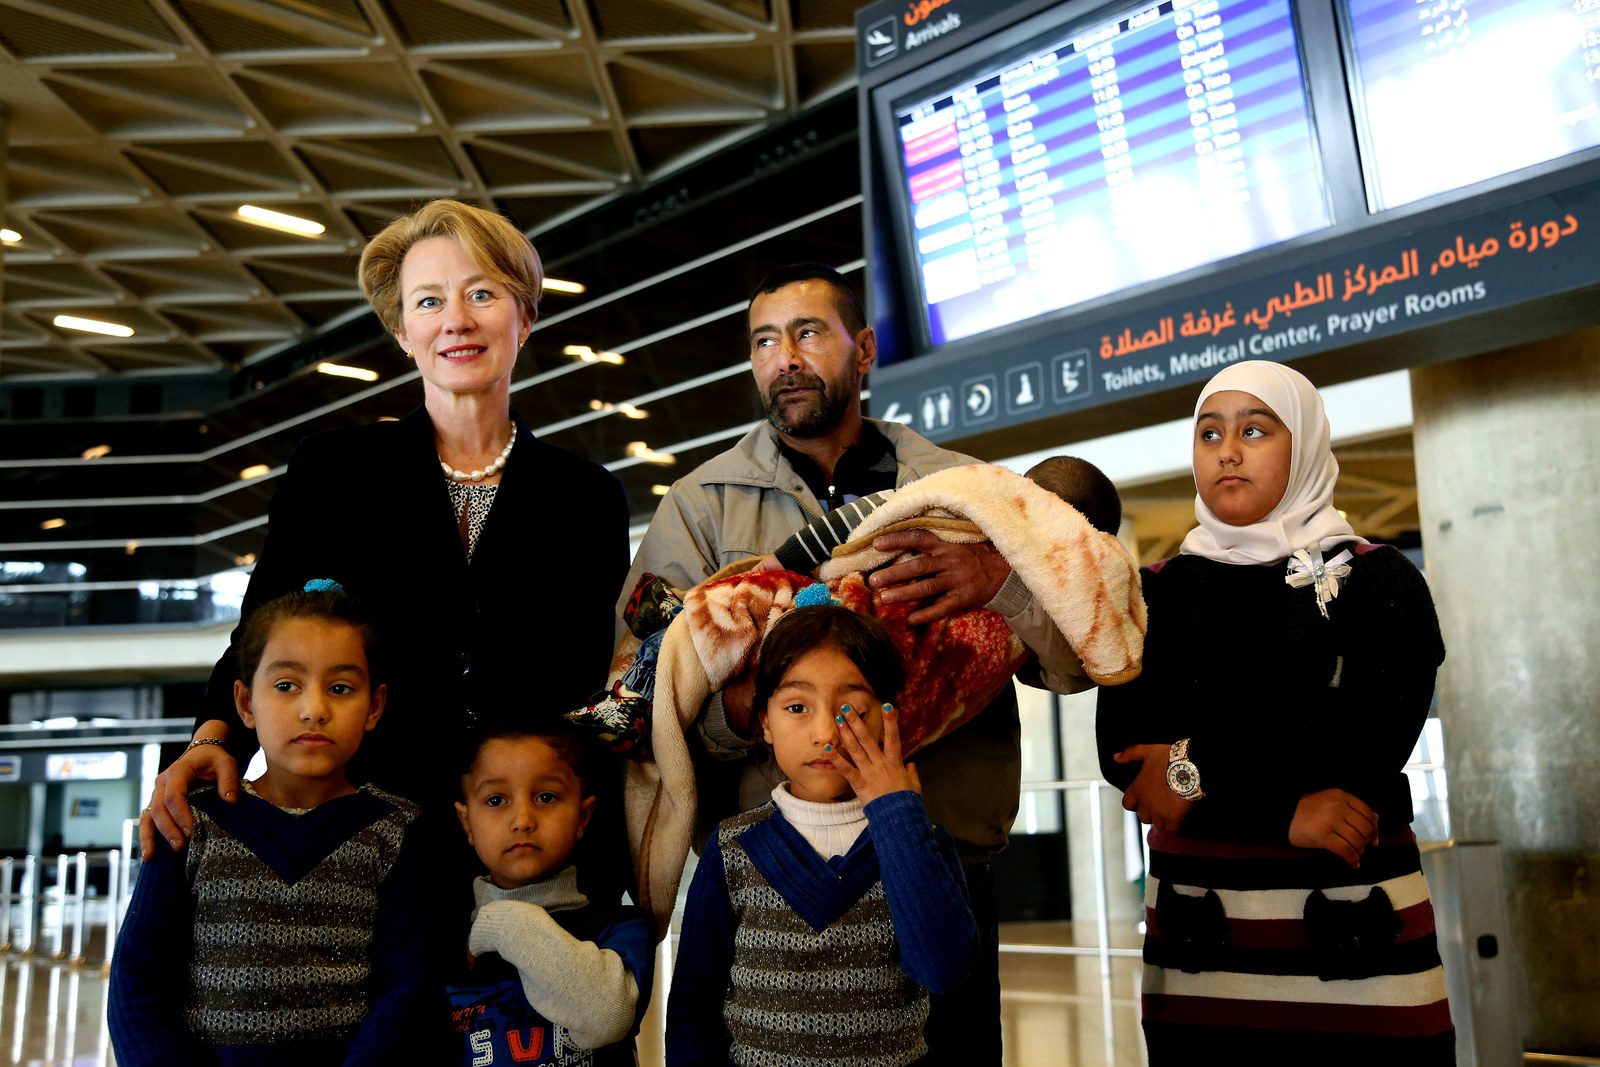 US Reaches Goal Of Resettling 10,000 Syrian Refugees Ahead Of Schedule